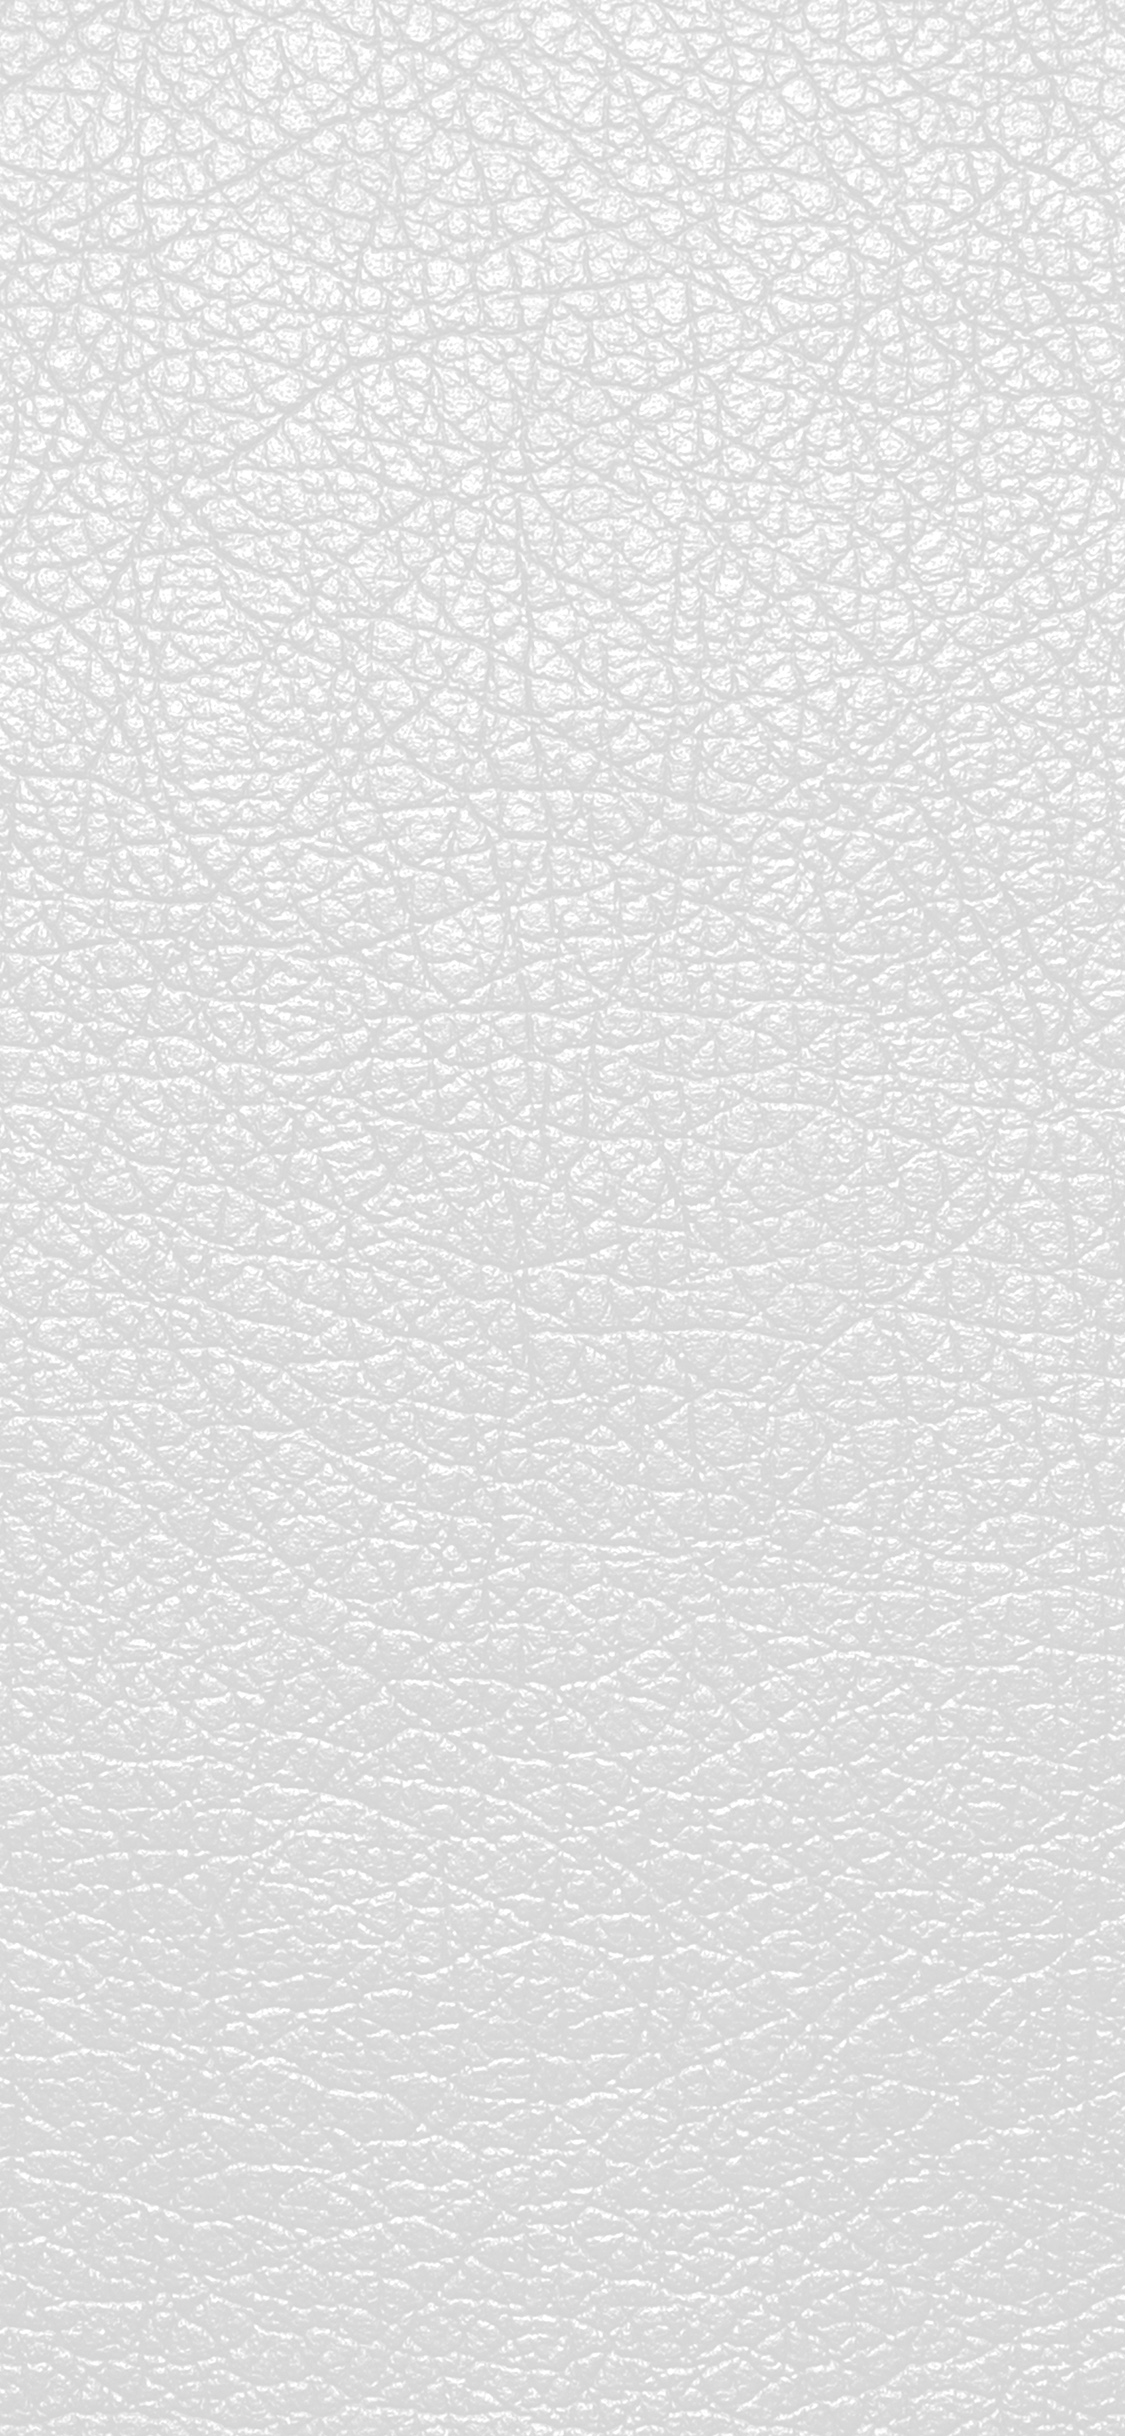 iPhoneXpapers.com-Apple-iPhone-wallpaper-vi31-texture-skin-white-leather-pattern